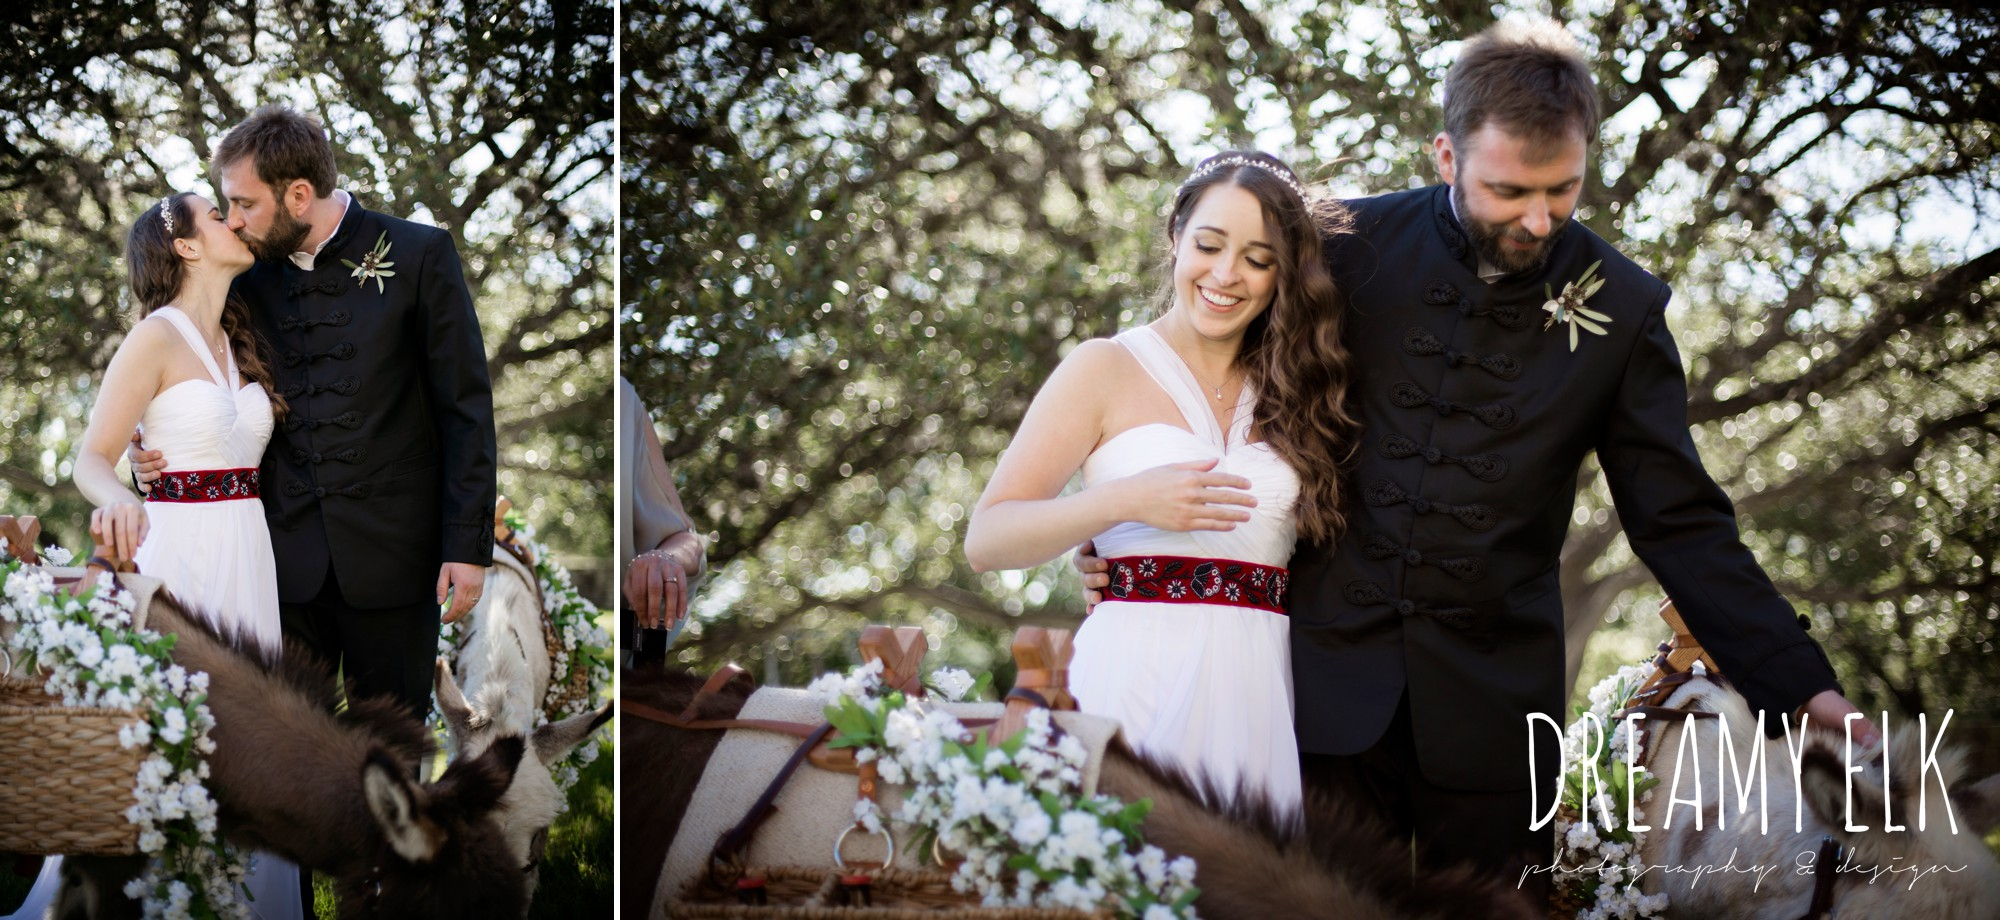 bride and groom with beer burros, outdoor spring april wedding photo, thurman's mansion, dripping springs, texas {dreamy elk photography and design}